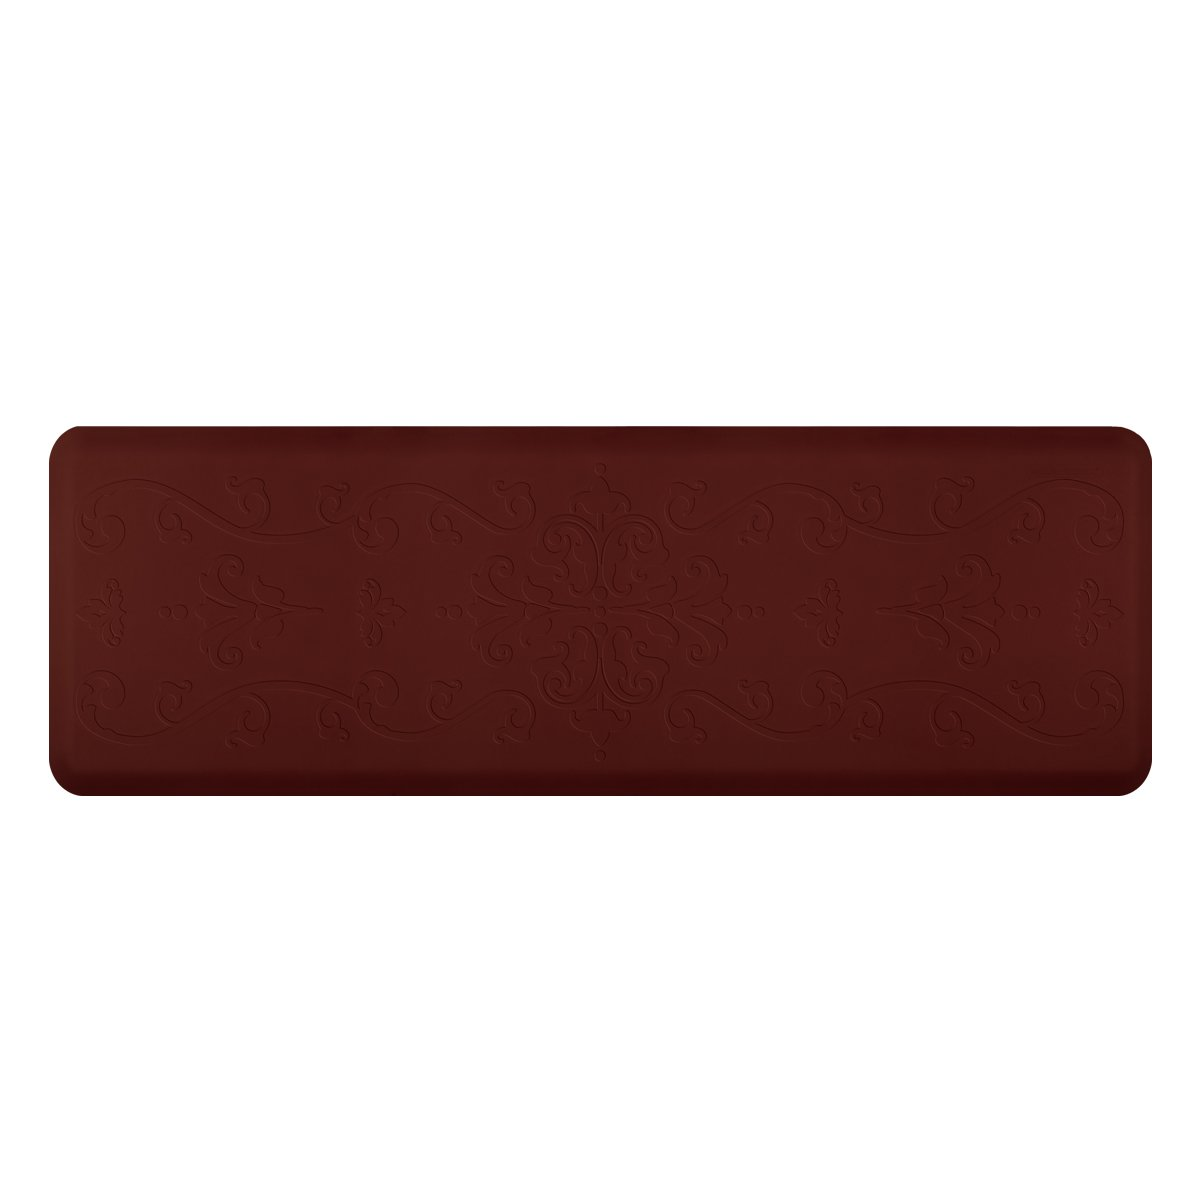 WellnessMats Anti-Fatigue 72 Inch by 24 Inch Entwine Motif Kitchen Mat, Burgundy